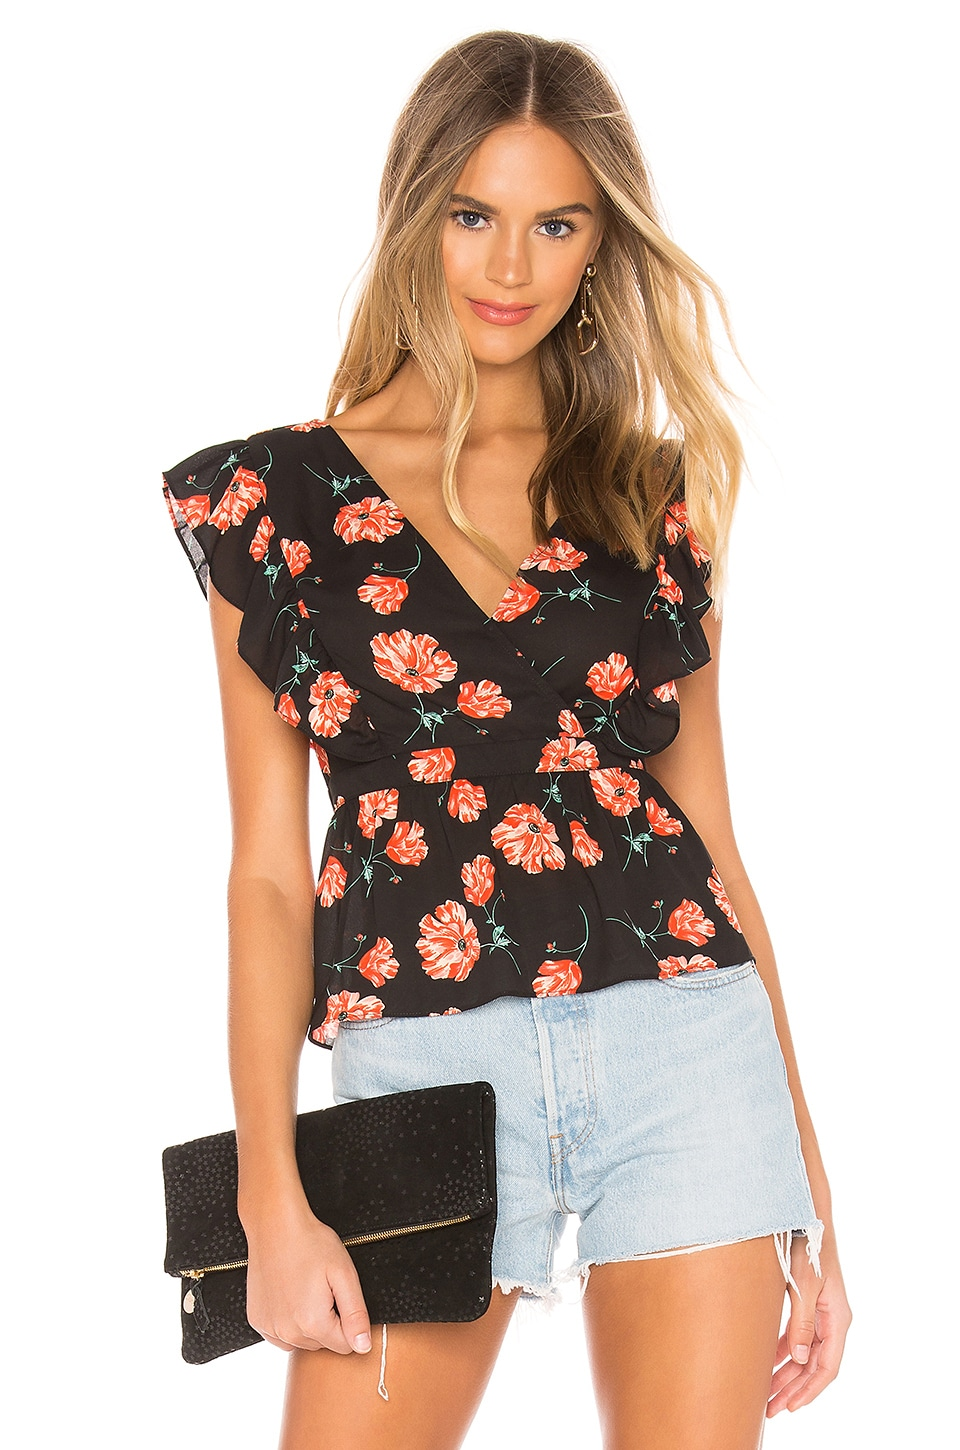 BB Dakota JACK by BB Dakota Poppy Love Top in Black